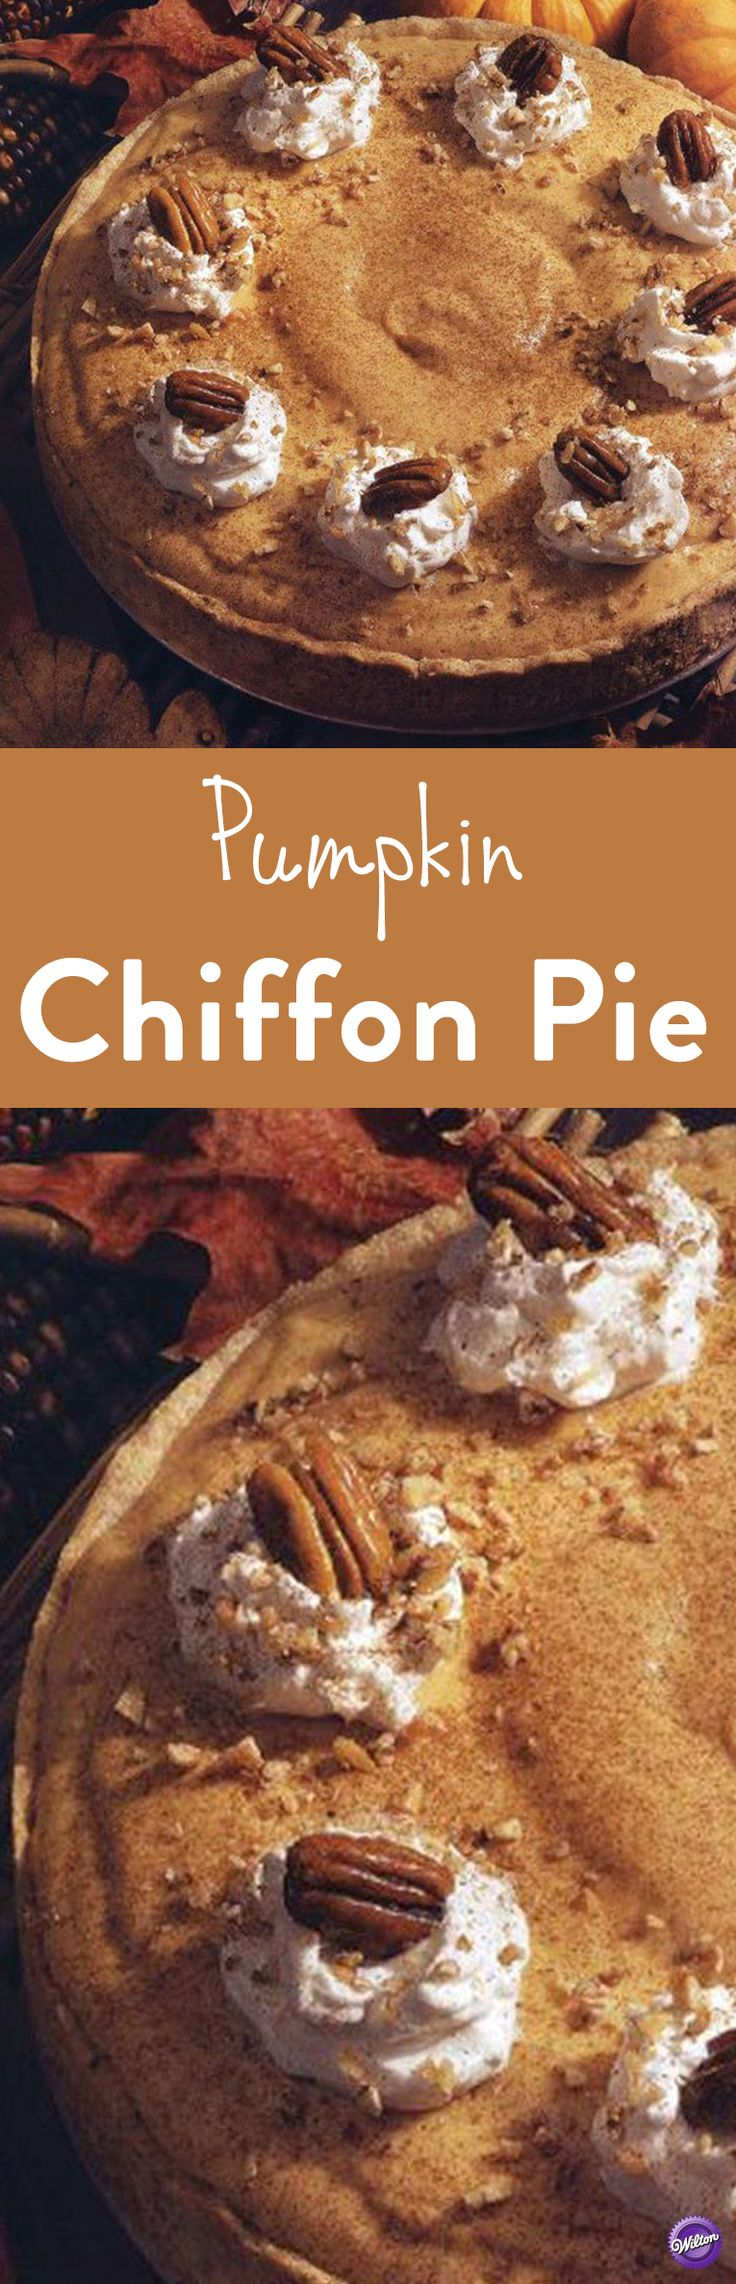 Pumpkin Chiffon Pie Recipe - This pumpkin chiffon pie is a deliciously light alternative to traditional pumpkin pie. Spiced with cinnamon and nutmeg, the golden pumpkin filling is spooned into a nut pastry crust made in a 10-inch springform pan. The perfect dessert to serve for Thanksgiving!